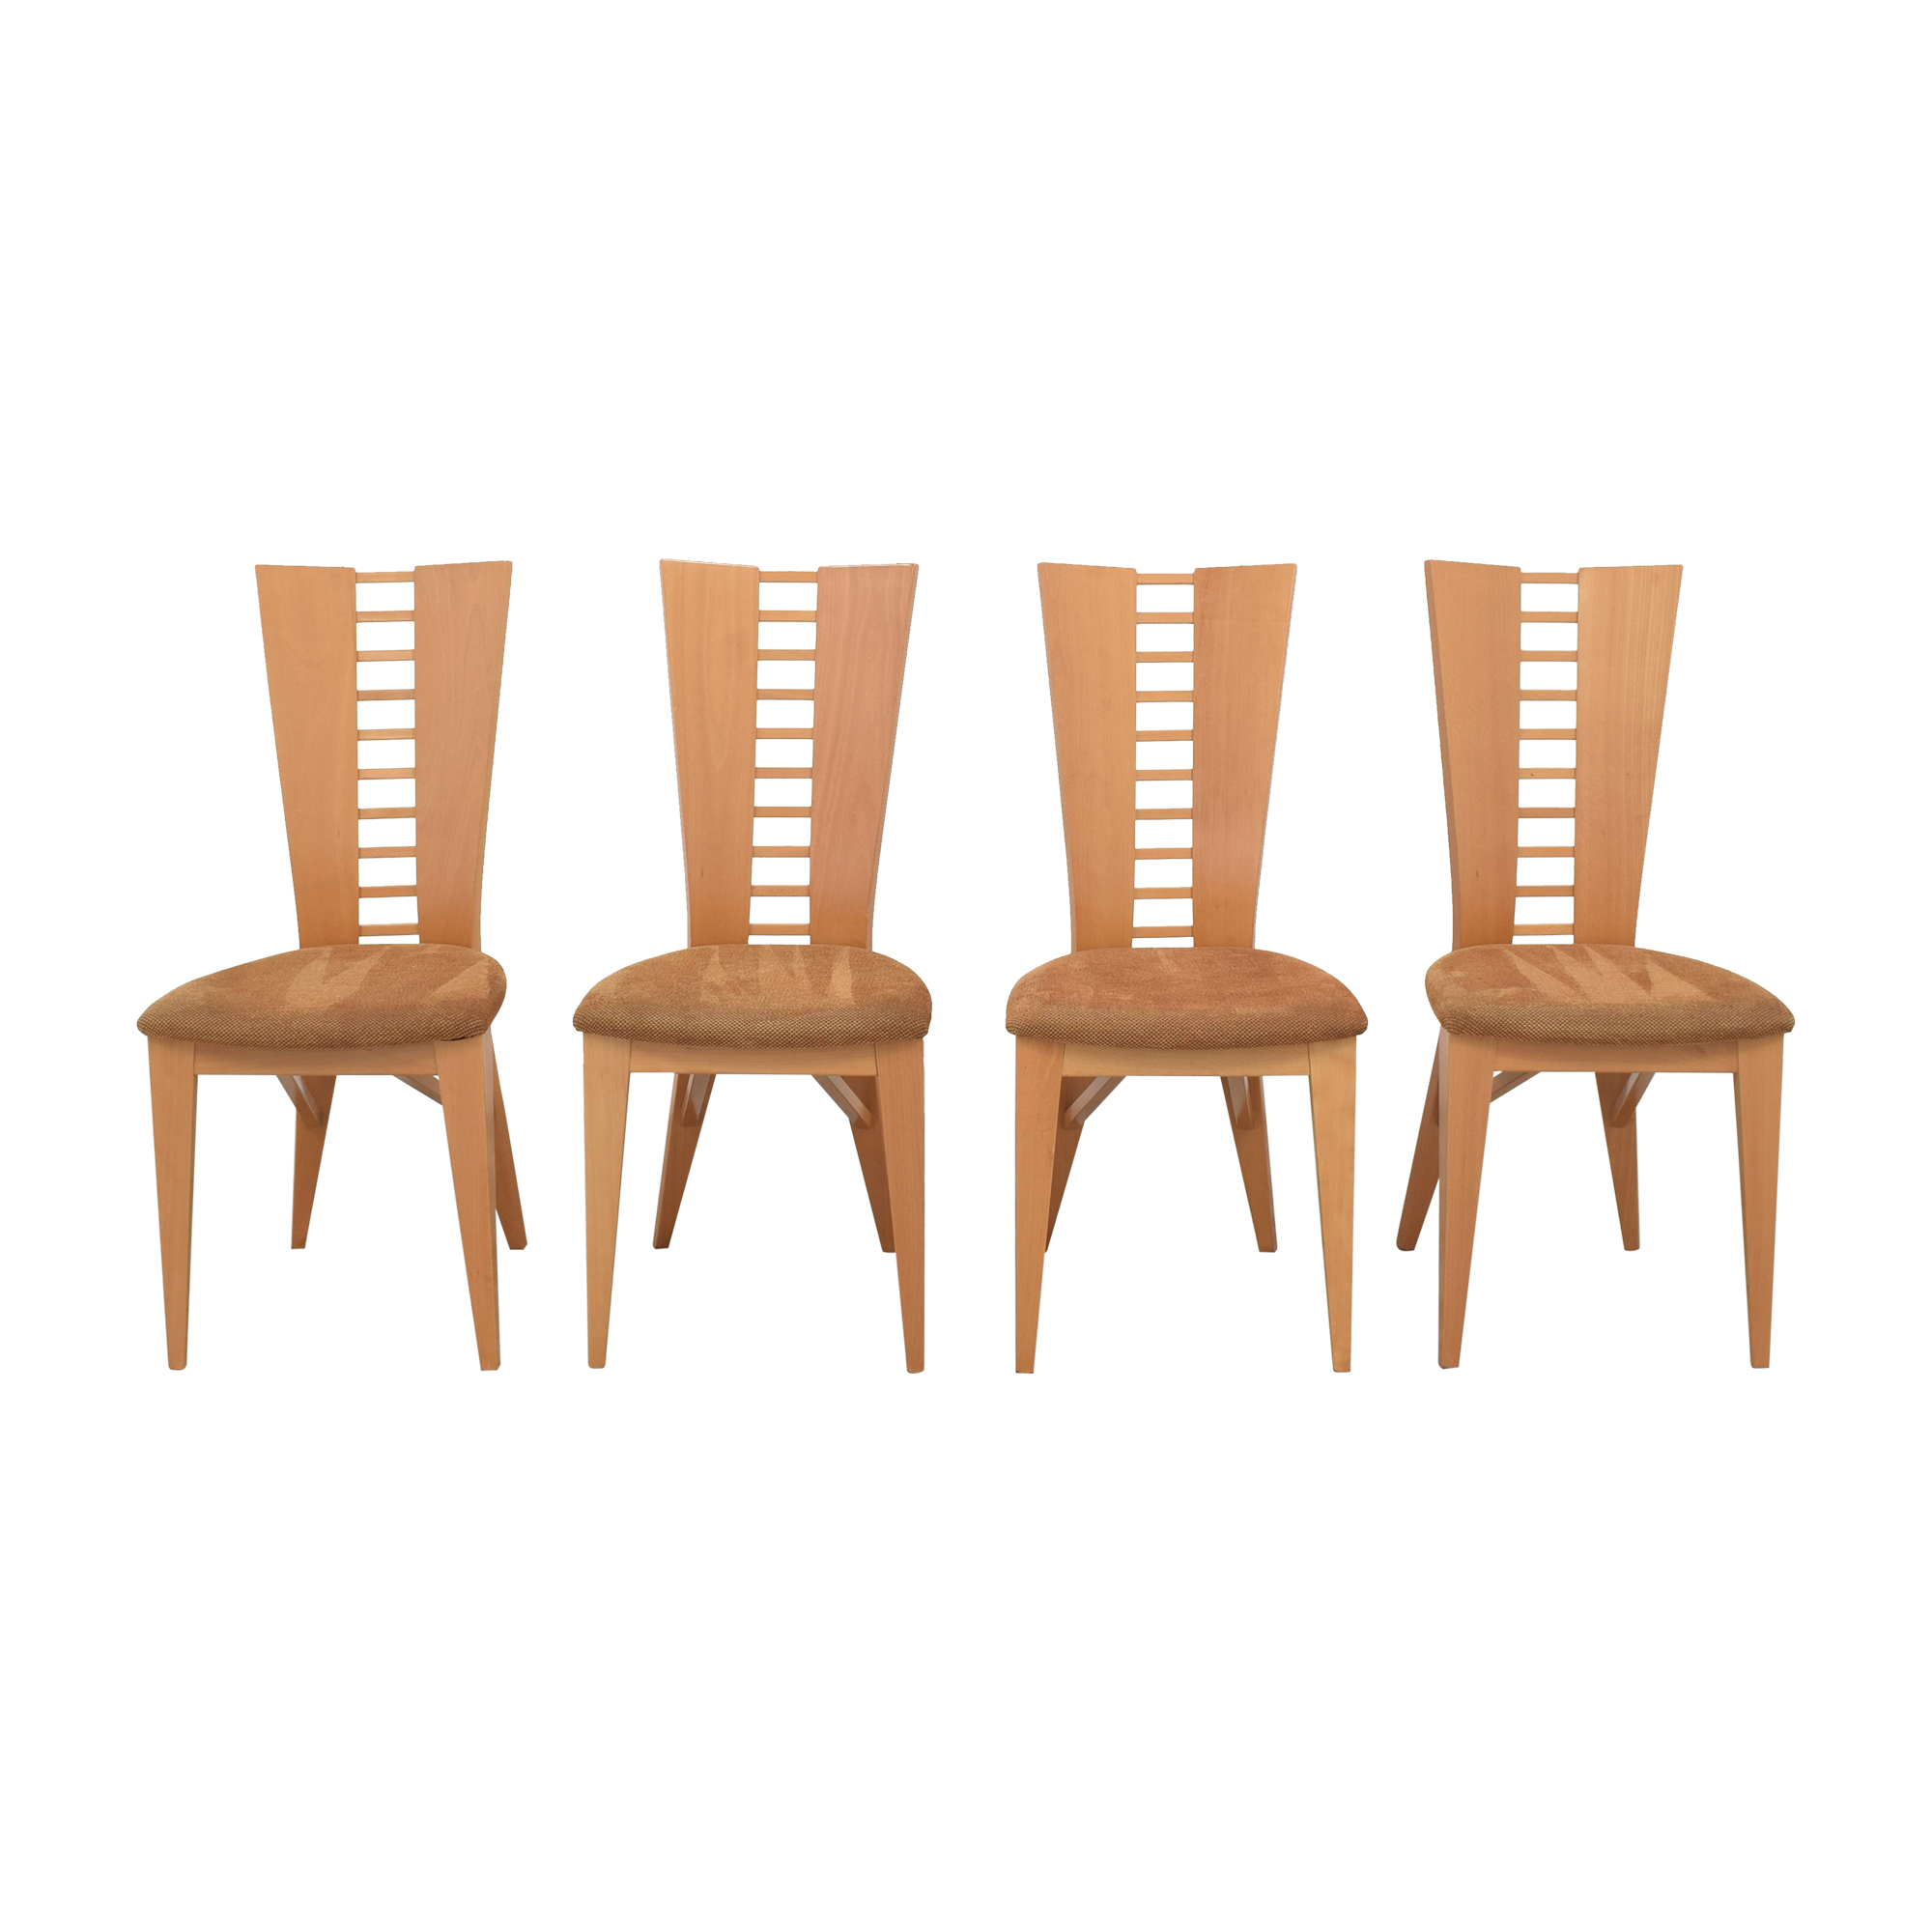 Excelsior Designs Excelsior Designs High Back Side Dining Chairs coupon